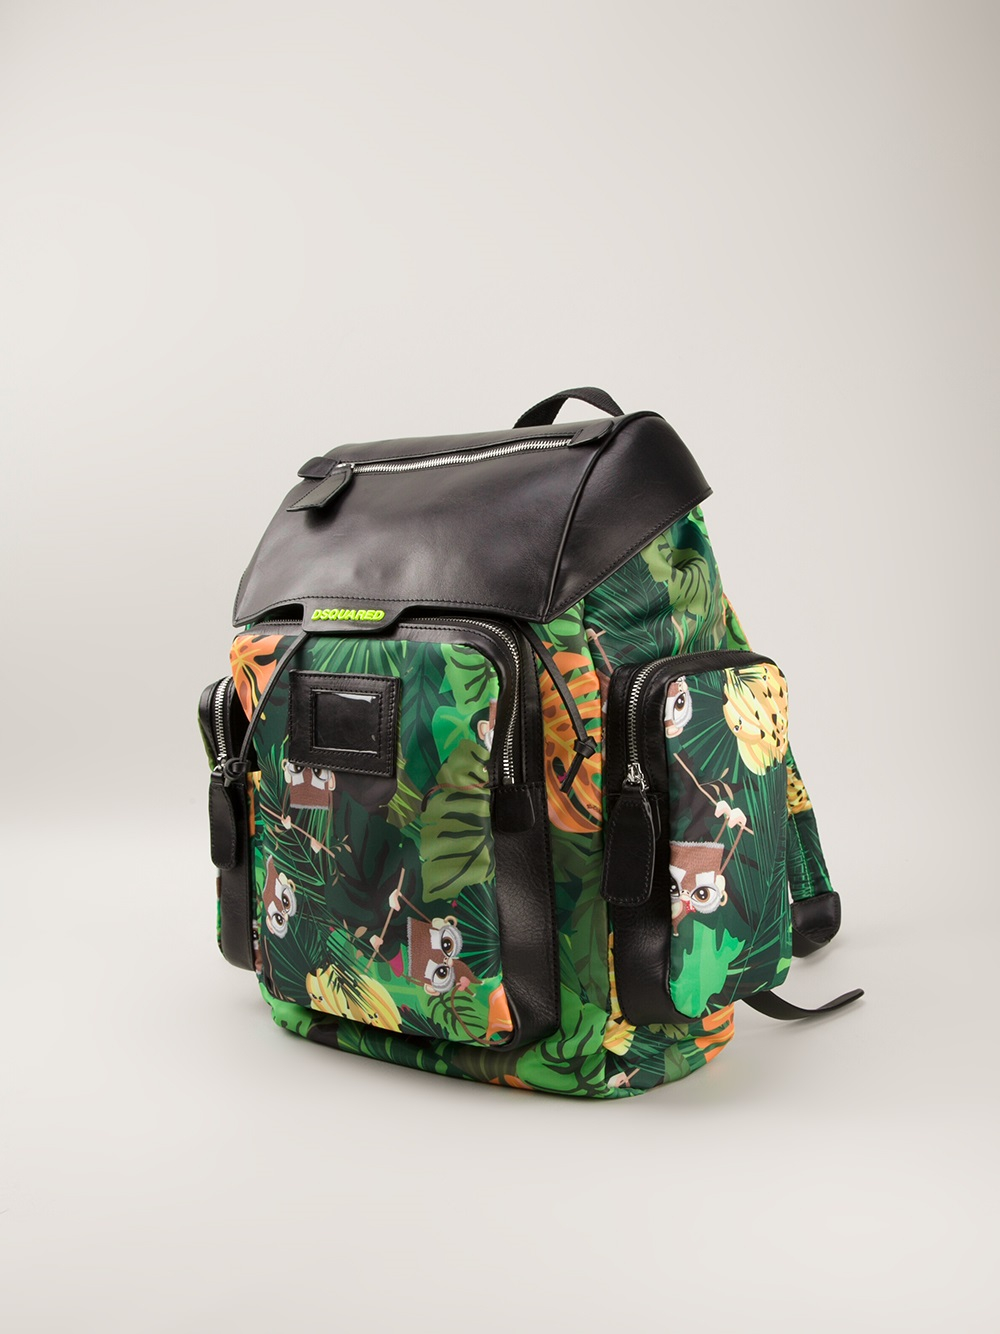 DSquared² Monkey Jungle Print Backpack in Green for Men